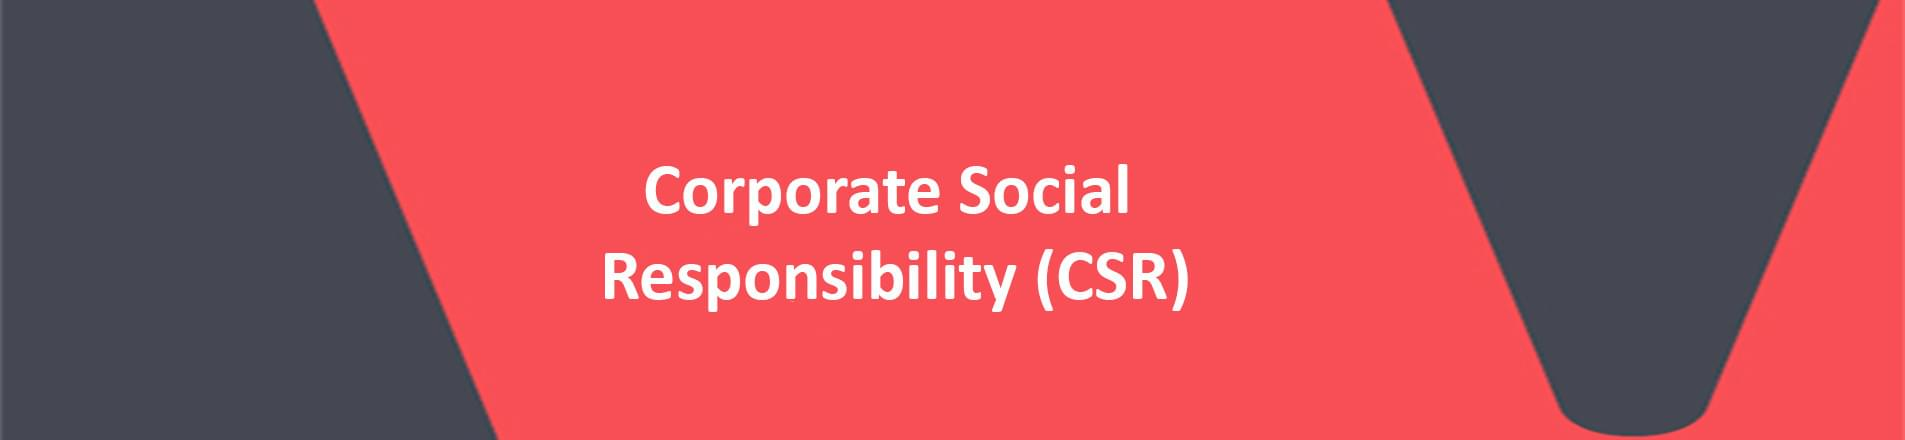 Image of the words corporate social responsibility on a red background